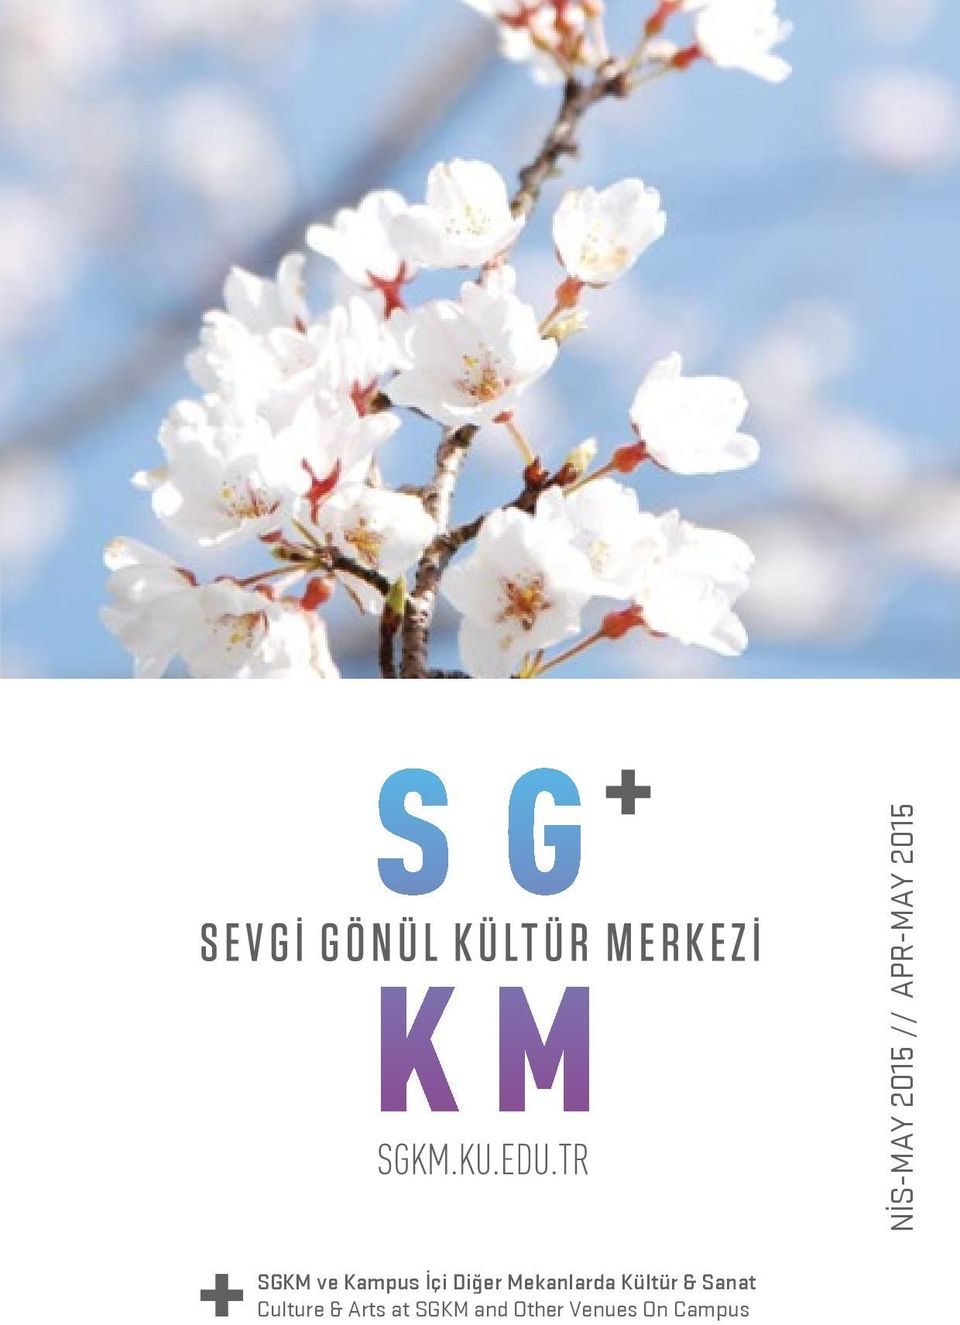 Culture & Arts at SGKM and Other